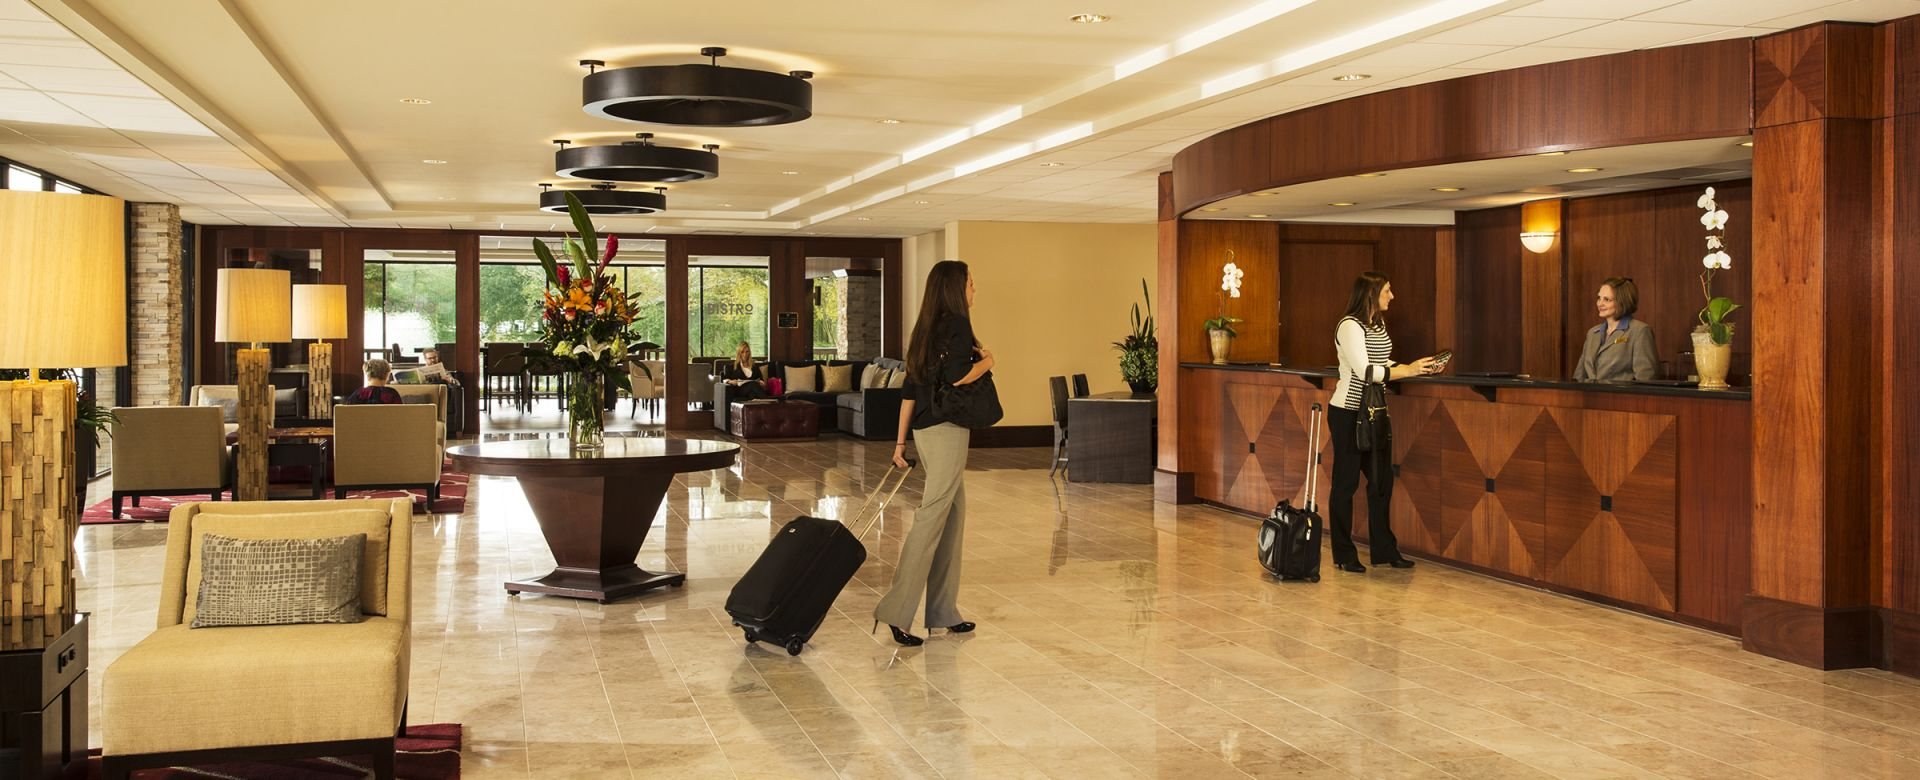 Woman approaching the front desk inside the Woodlands Resort lobby